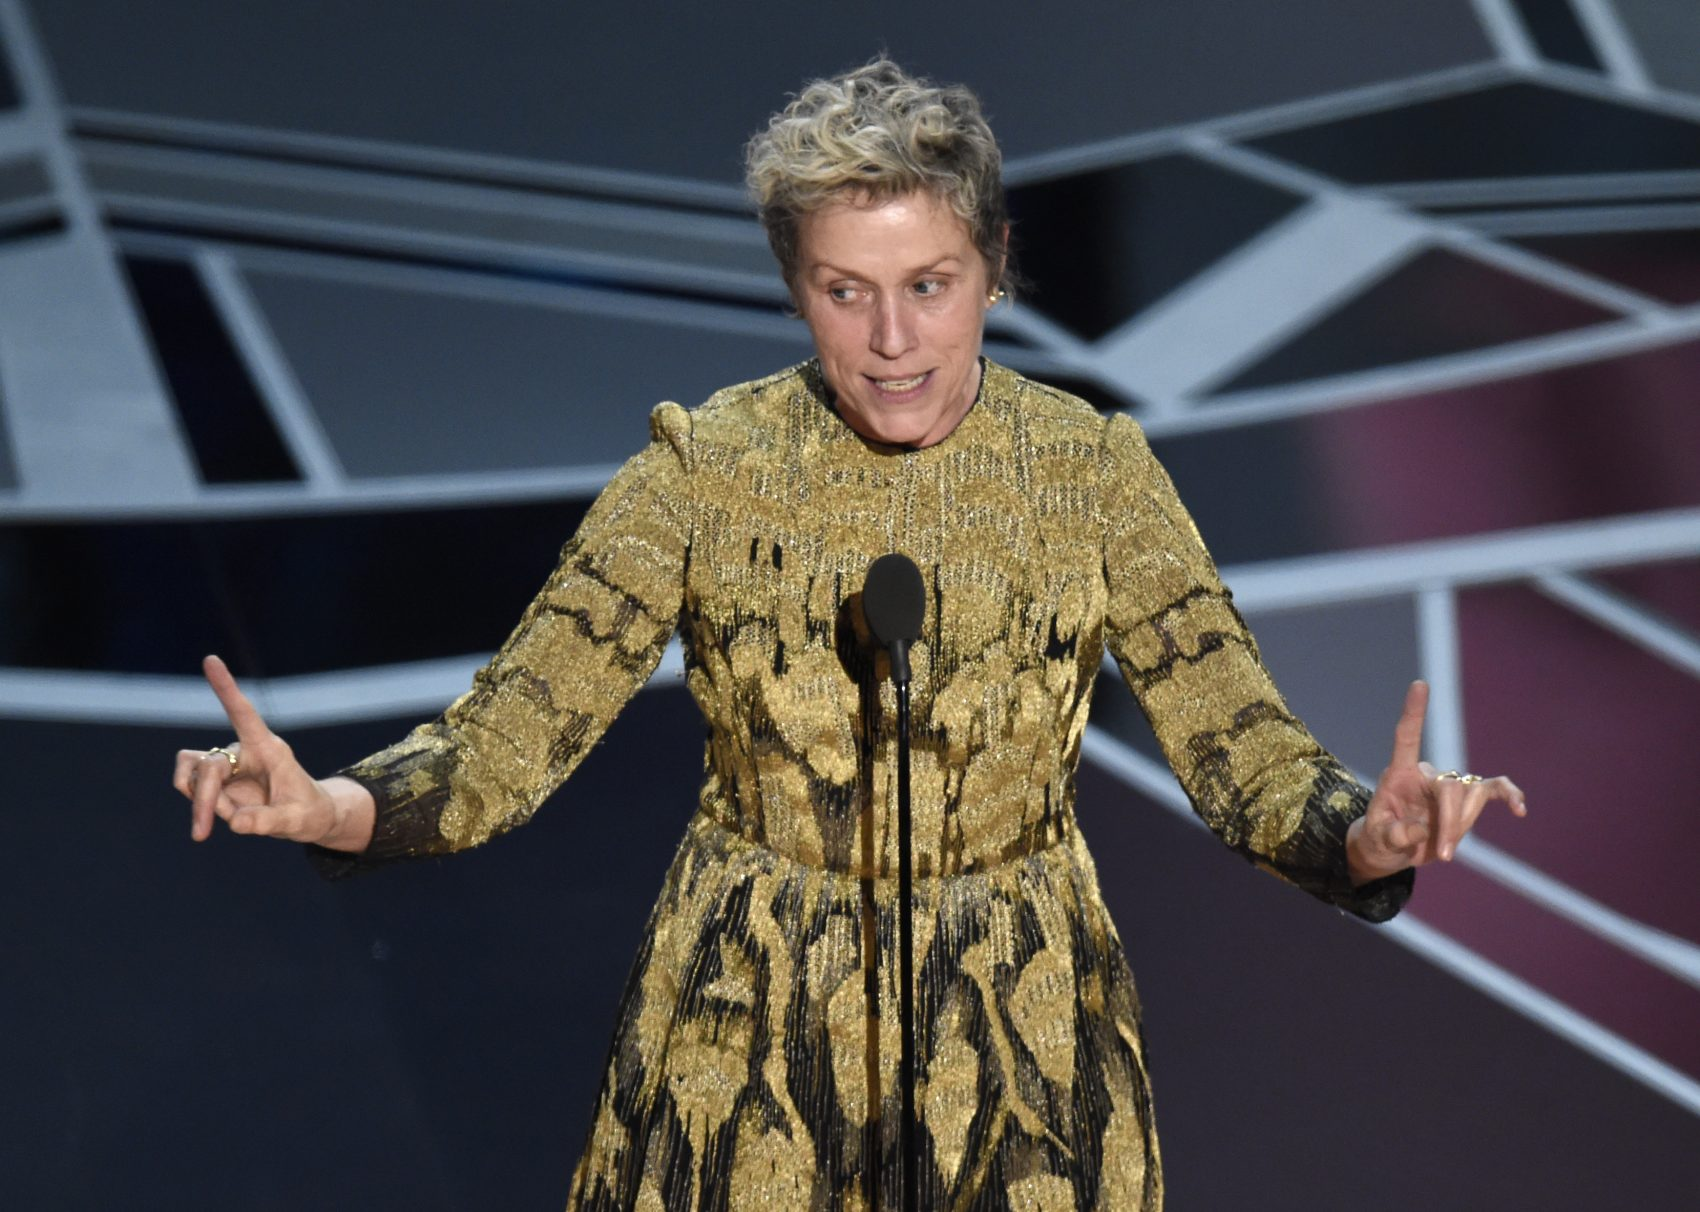 Frances McDormand accepts the award for Best Actress. (Chris Pizzello/Invision/AP)